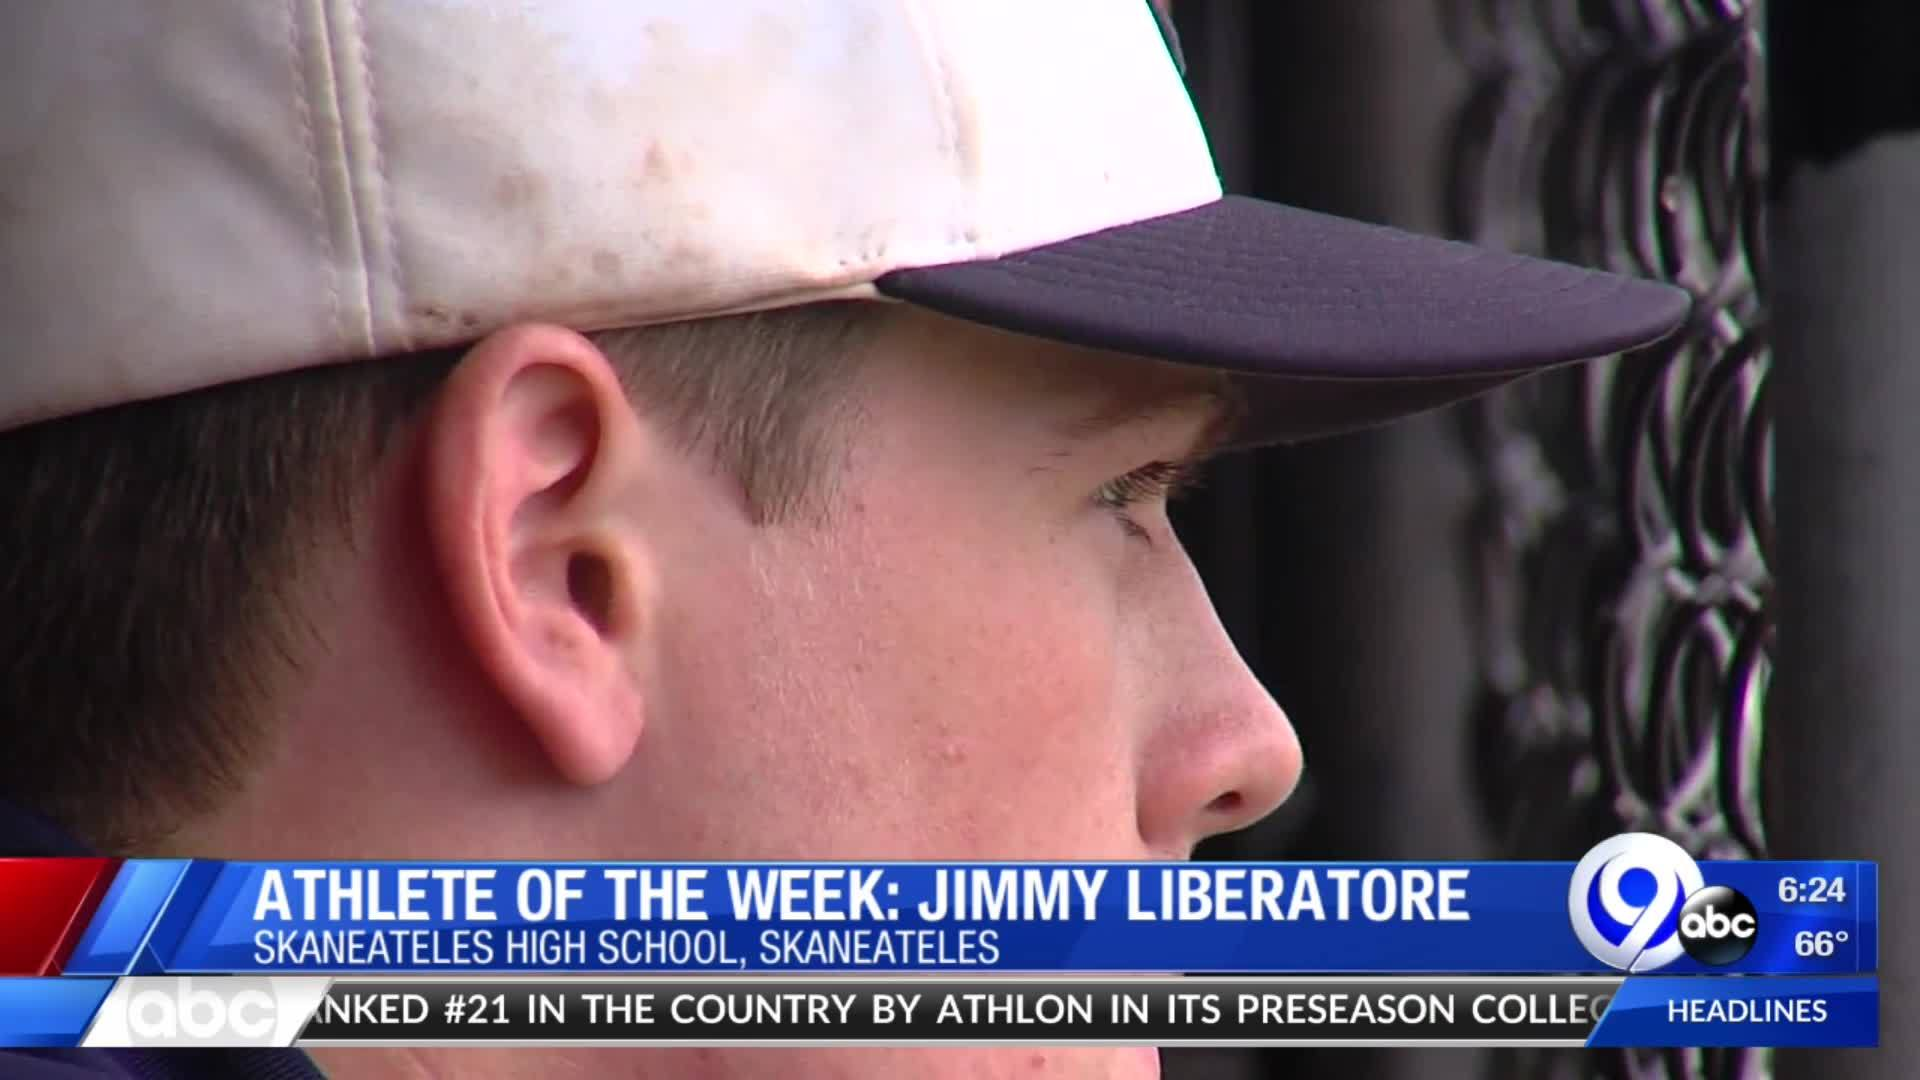 Athlete_of_the_Week__Jimmy_Liberatore_7_20190522224037